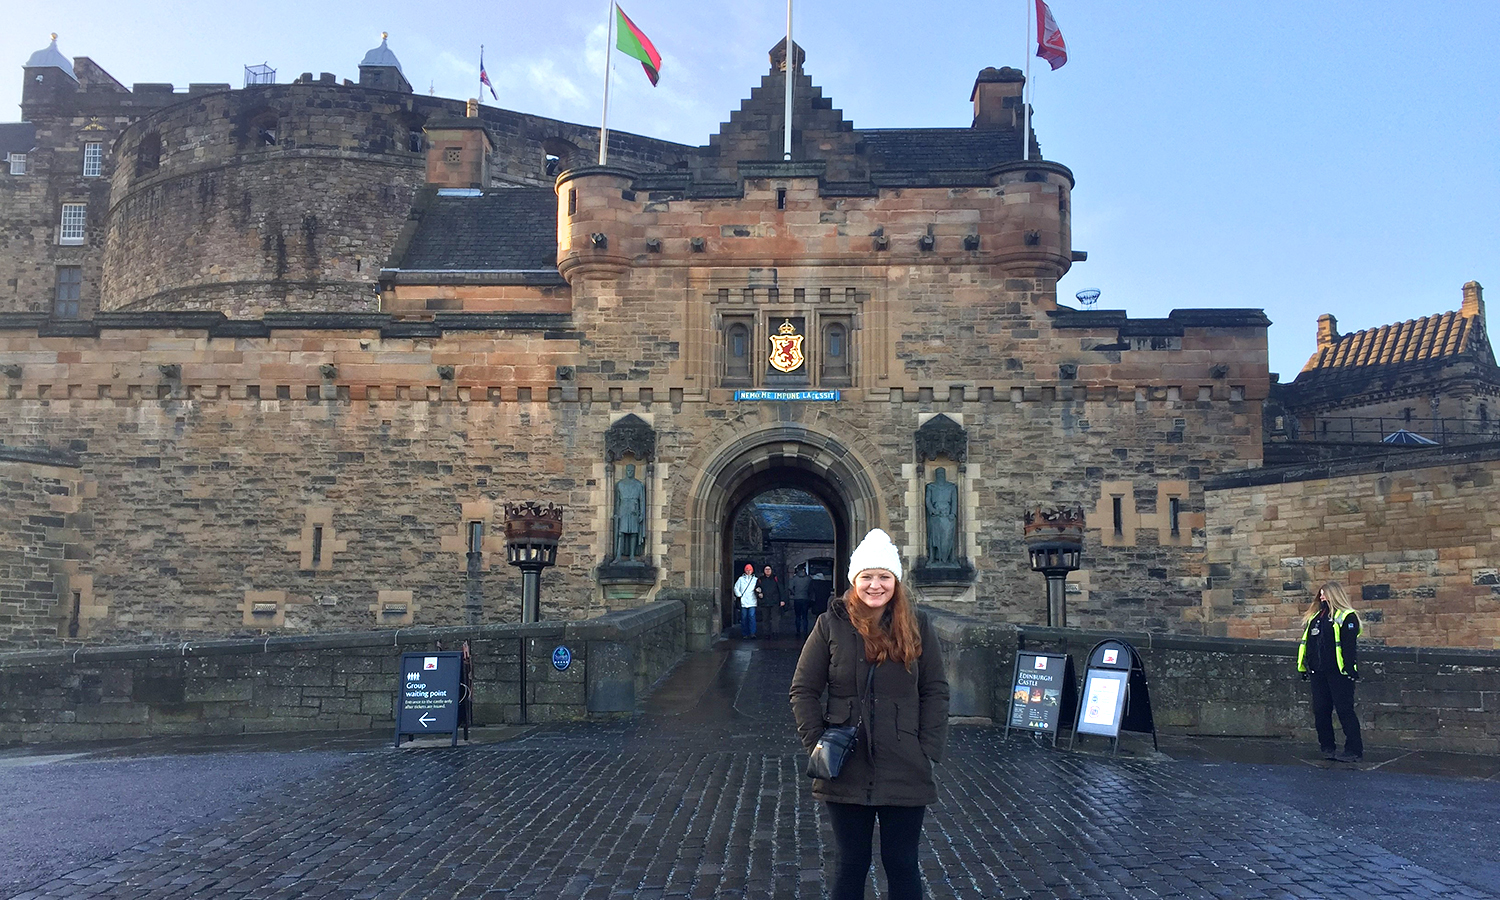 Allison Doherty '19 visits the Edinburgh Castle while studying abroad in Scotland through the HWS Center for Global Education and Edinburgh Napier University.